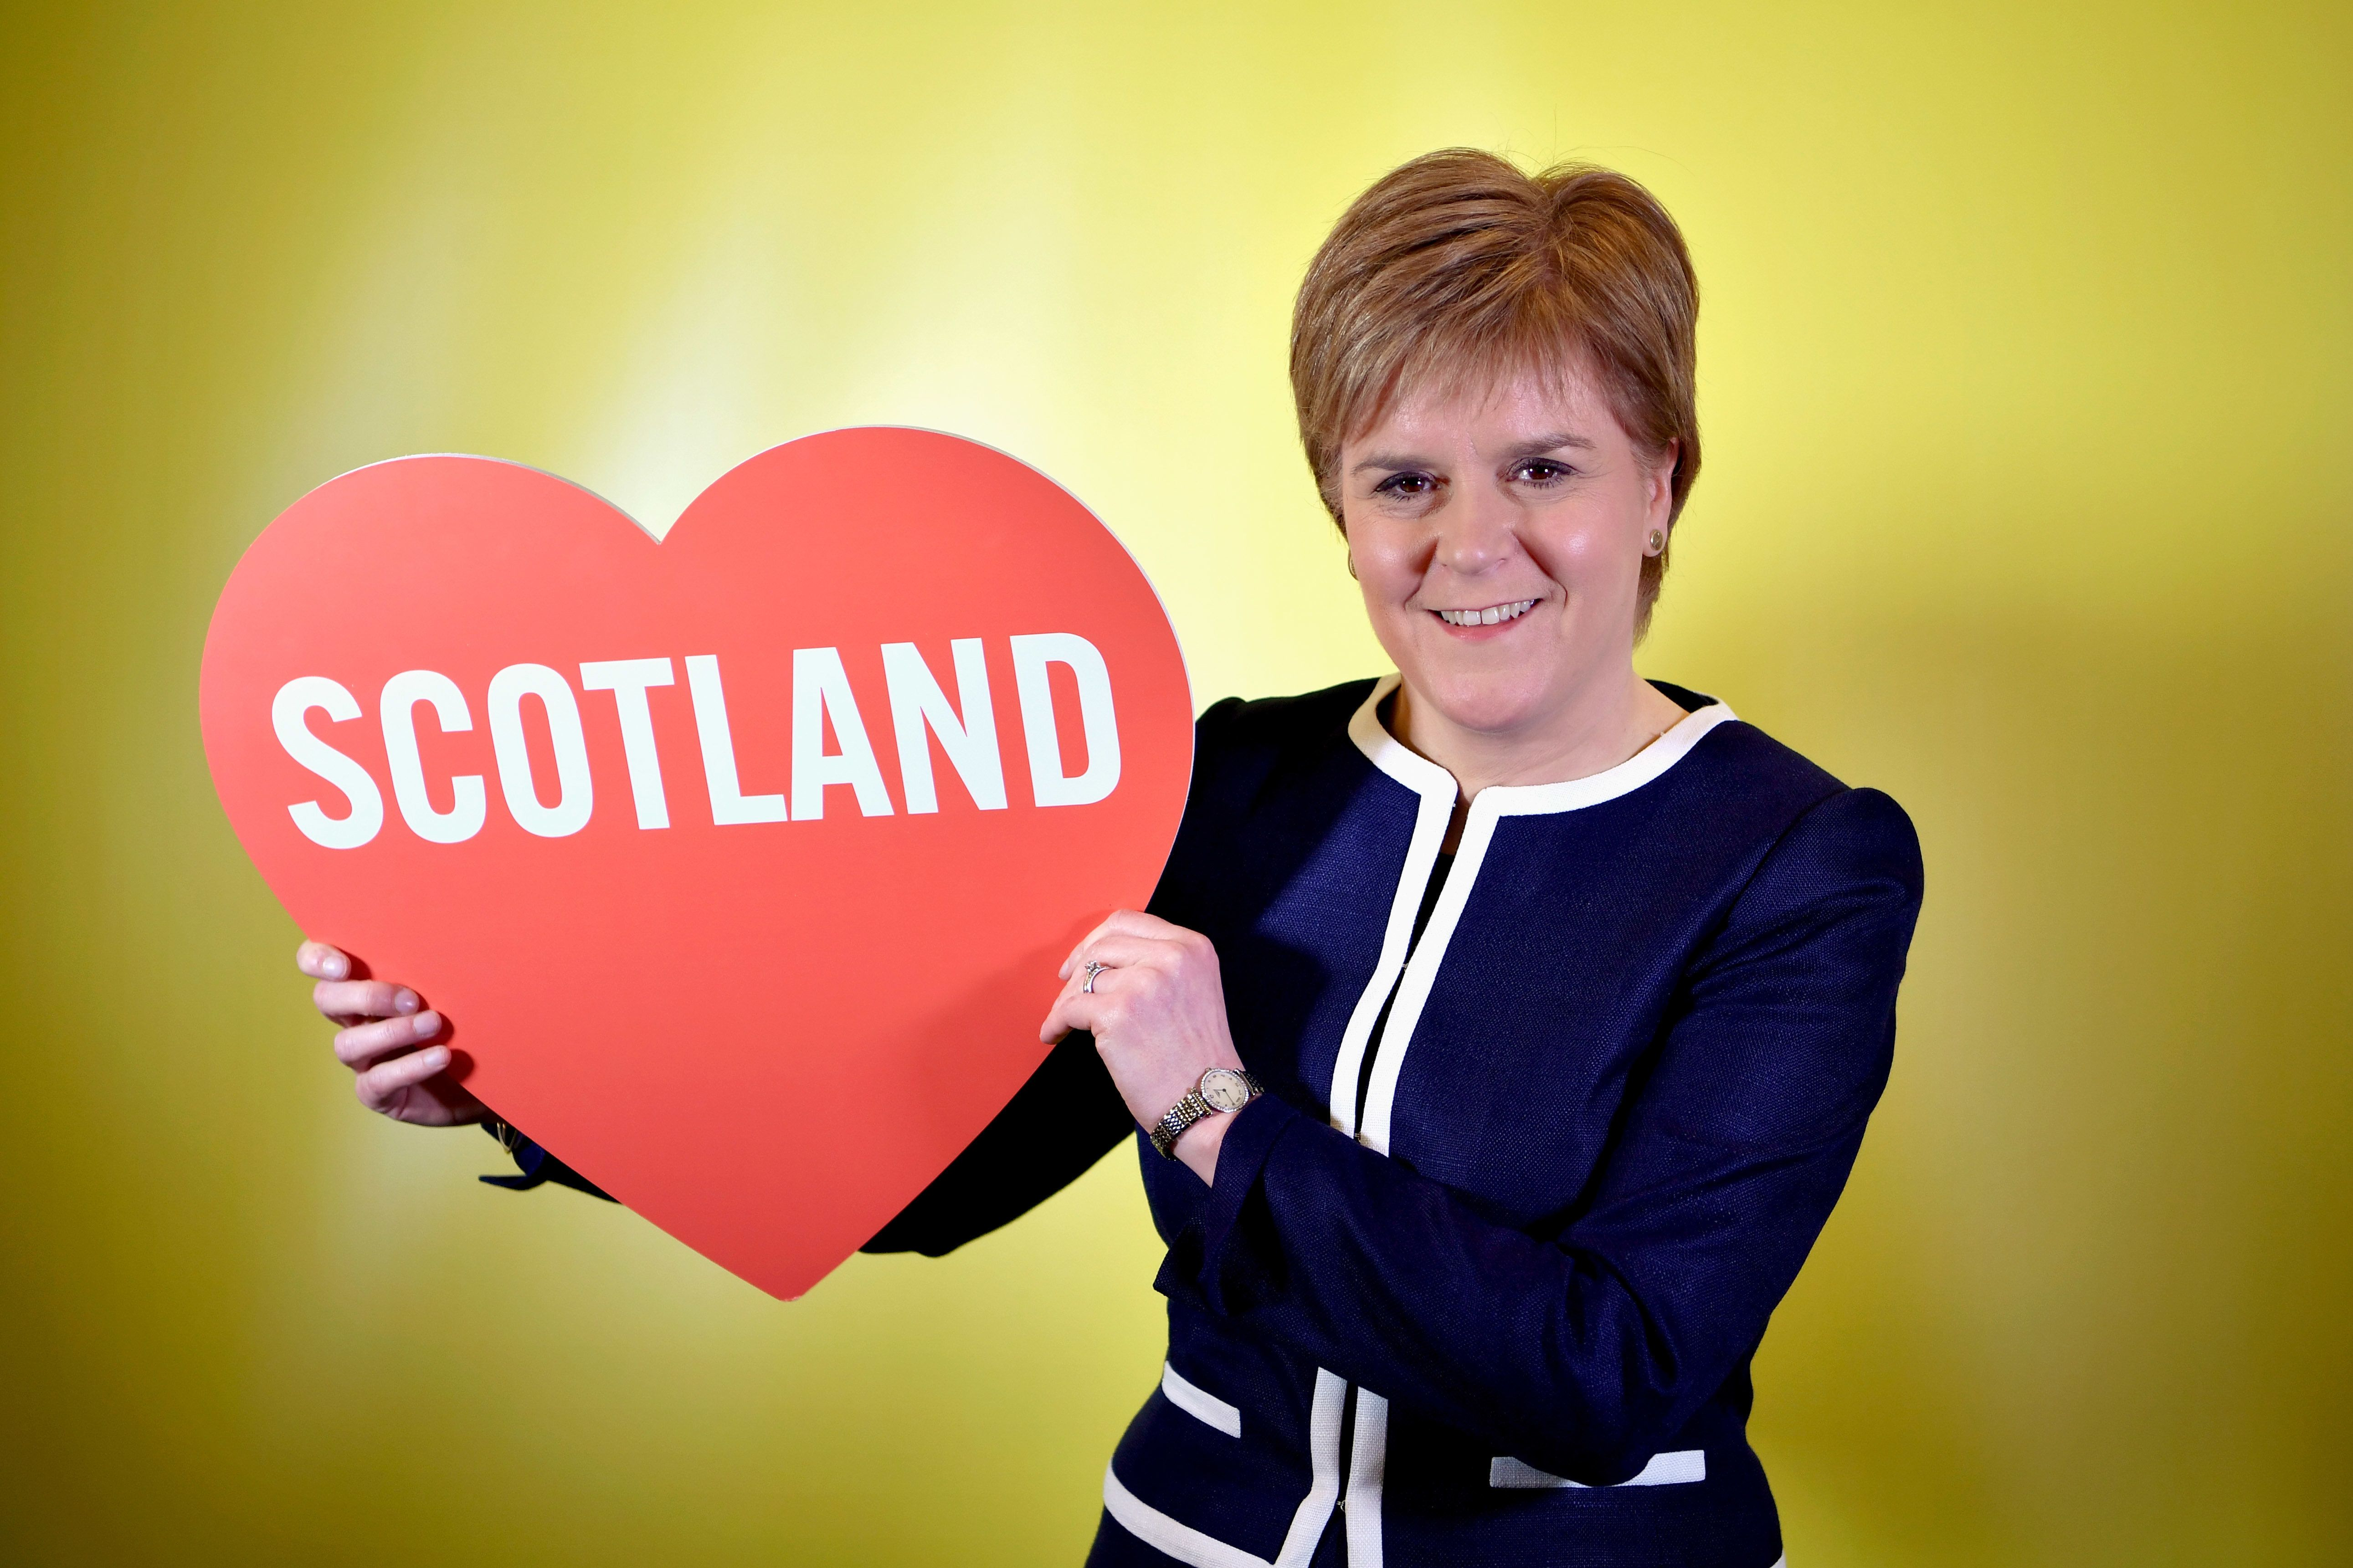 ABERDEEN, SCOTLAND - MARCH 17:  First Minister of Scotland Nicola Sturgeon poses for a photograph with a love heart at the spring conference on March 17, 2017 in Aberdeen, Scotland. Addressing delegates at the spring conference this morning in Aberdeen today, deputy leader Angus Robertson claimed that the Prime Minister Theresa May 'panicked' in turning down calls for a referendum on independence.  (Photo by Jeff J Mitchell/Getty Images)